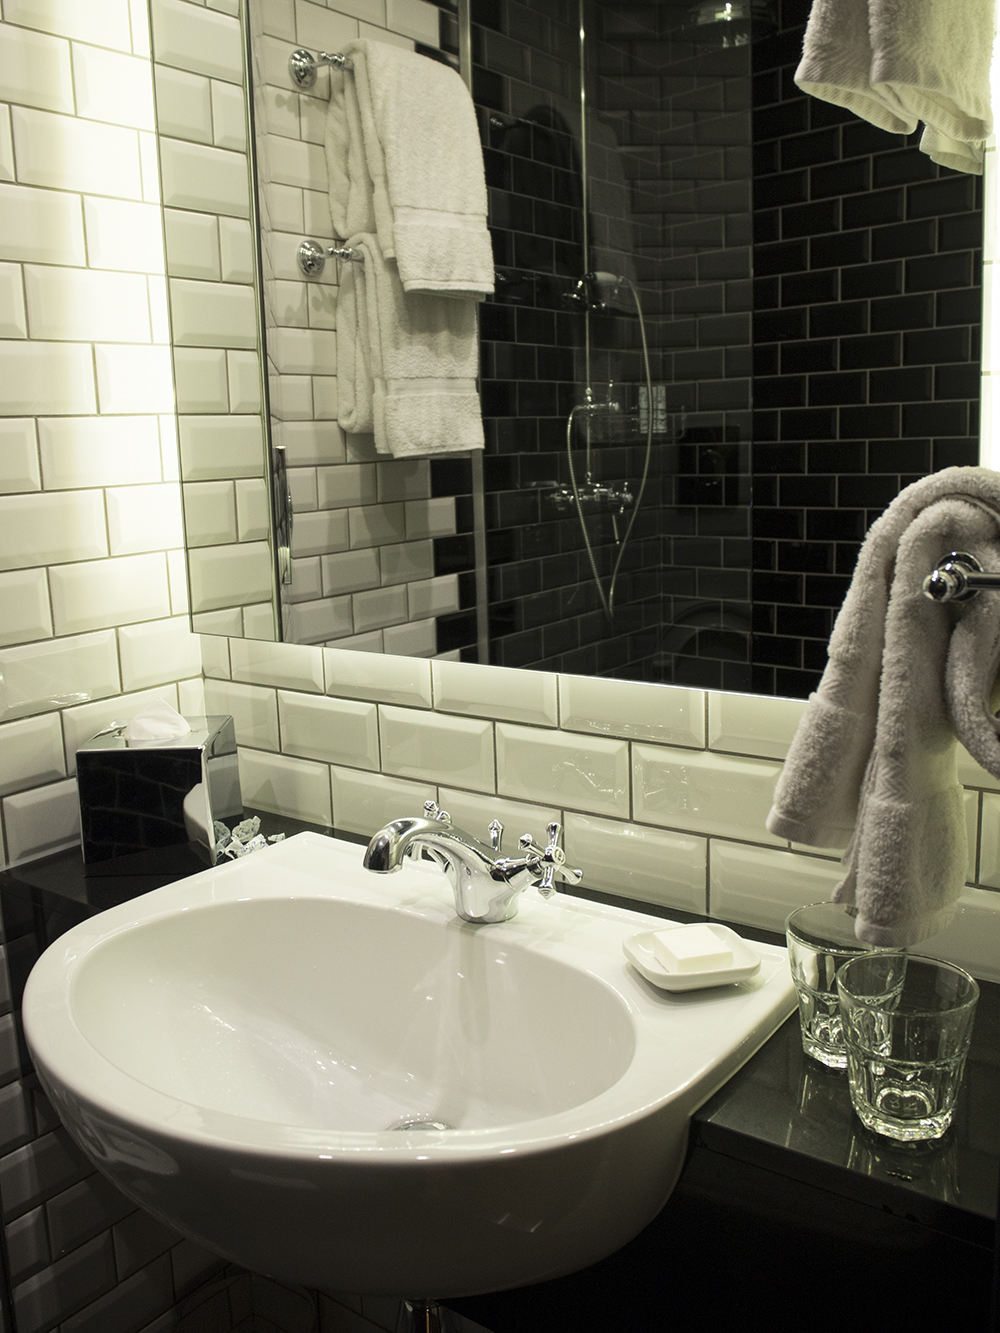 bathroom-hoxton-hotel-shoebox-room